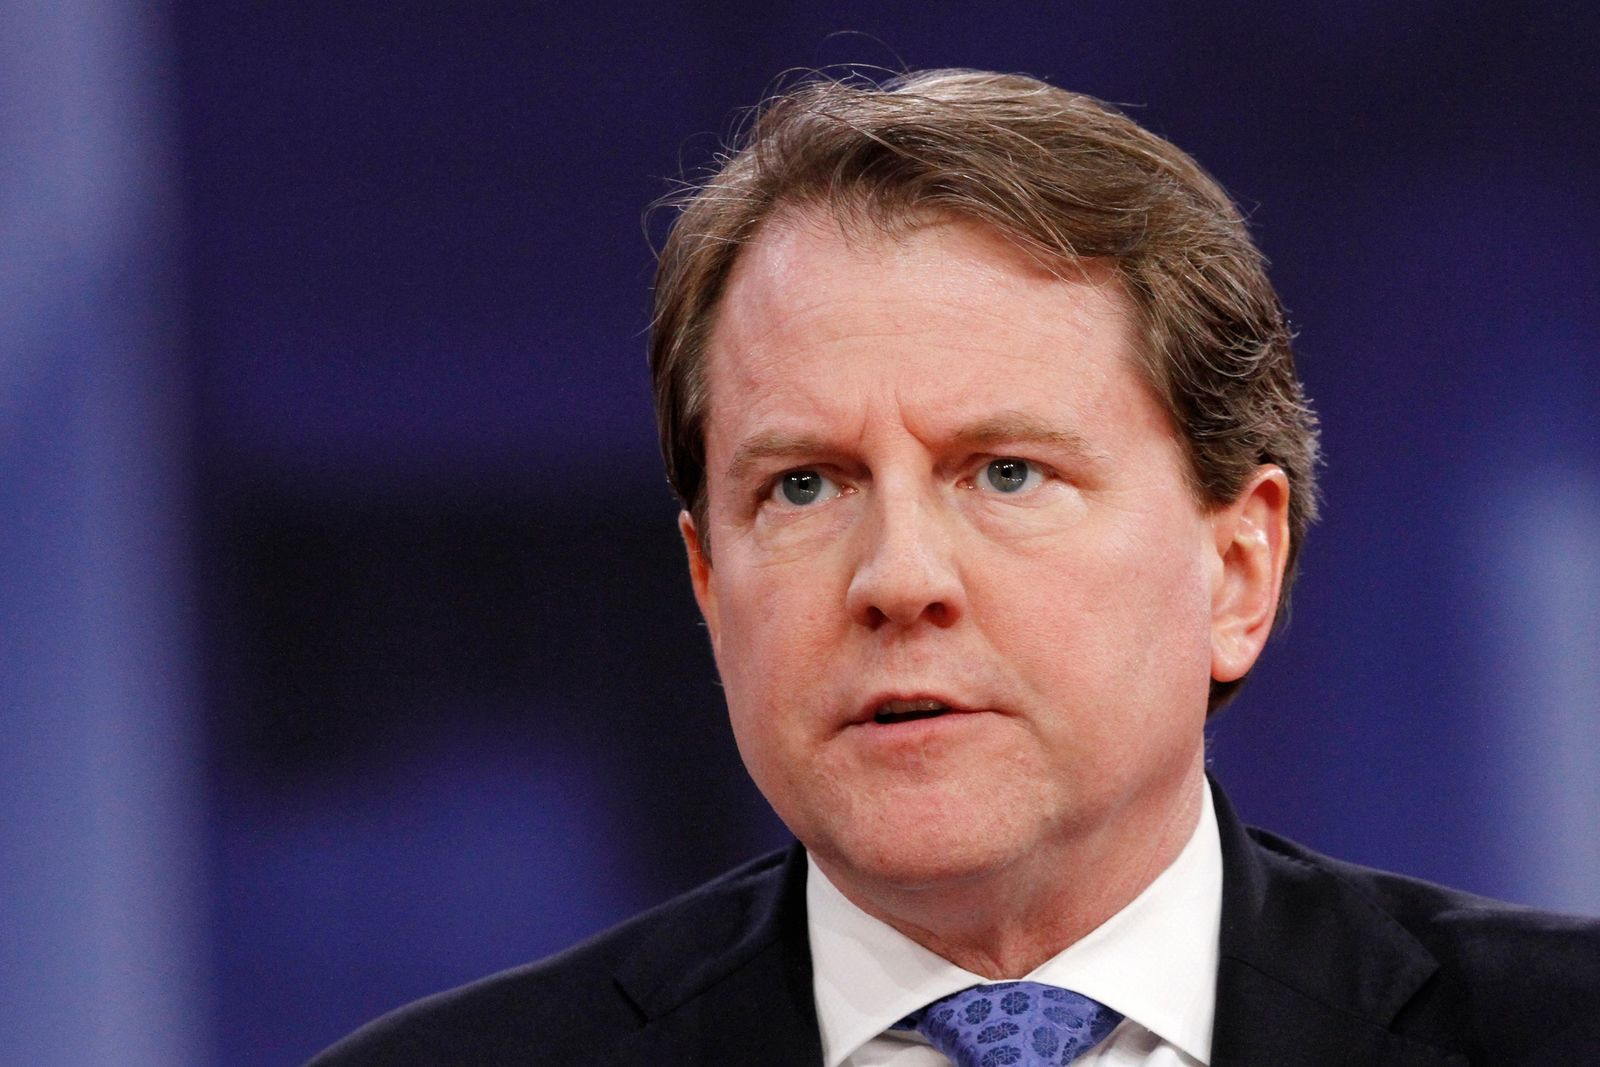 FILE - In this Feb. 22, 2018, file photo White House counsel Don McGahn speaks at the Conservative Political Action Conference (CPAC), at National Harbor, Md. McGahn was barely on speaking terms with President Donald Trump when he left the White House last fall. . (AP Photo/Jacquelyn Martin, File)